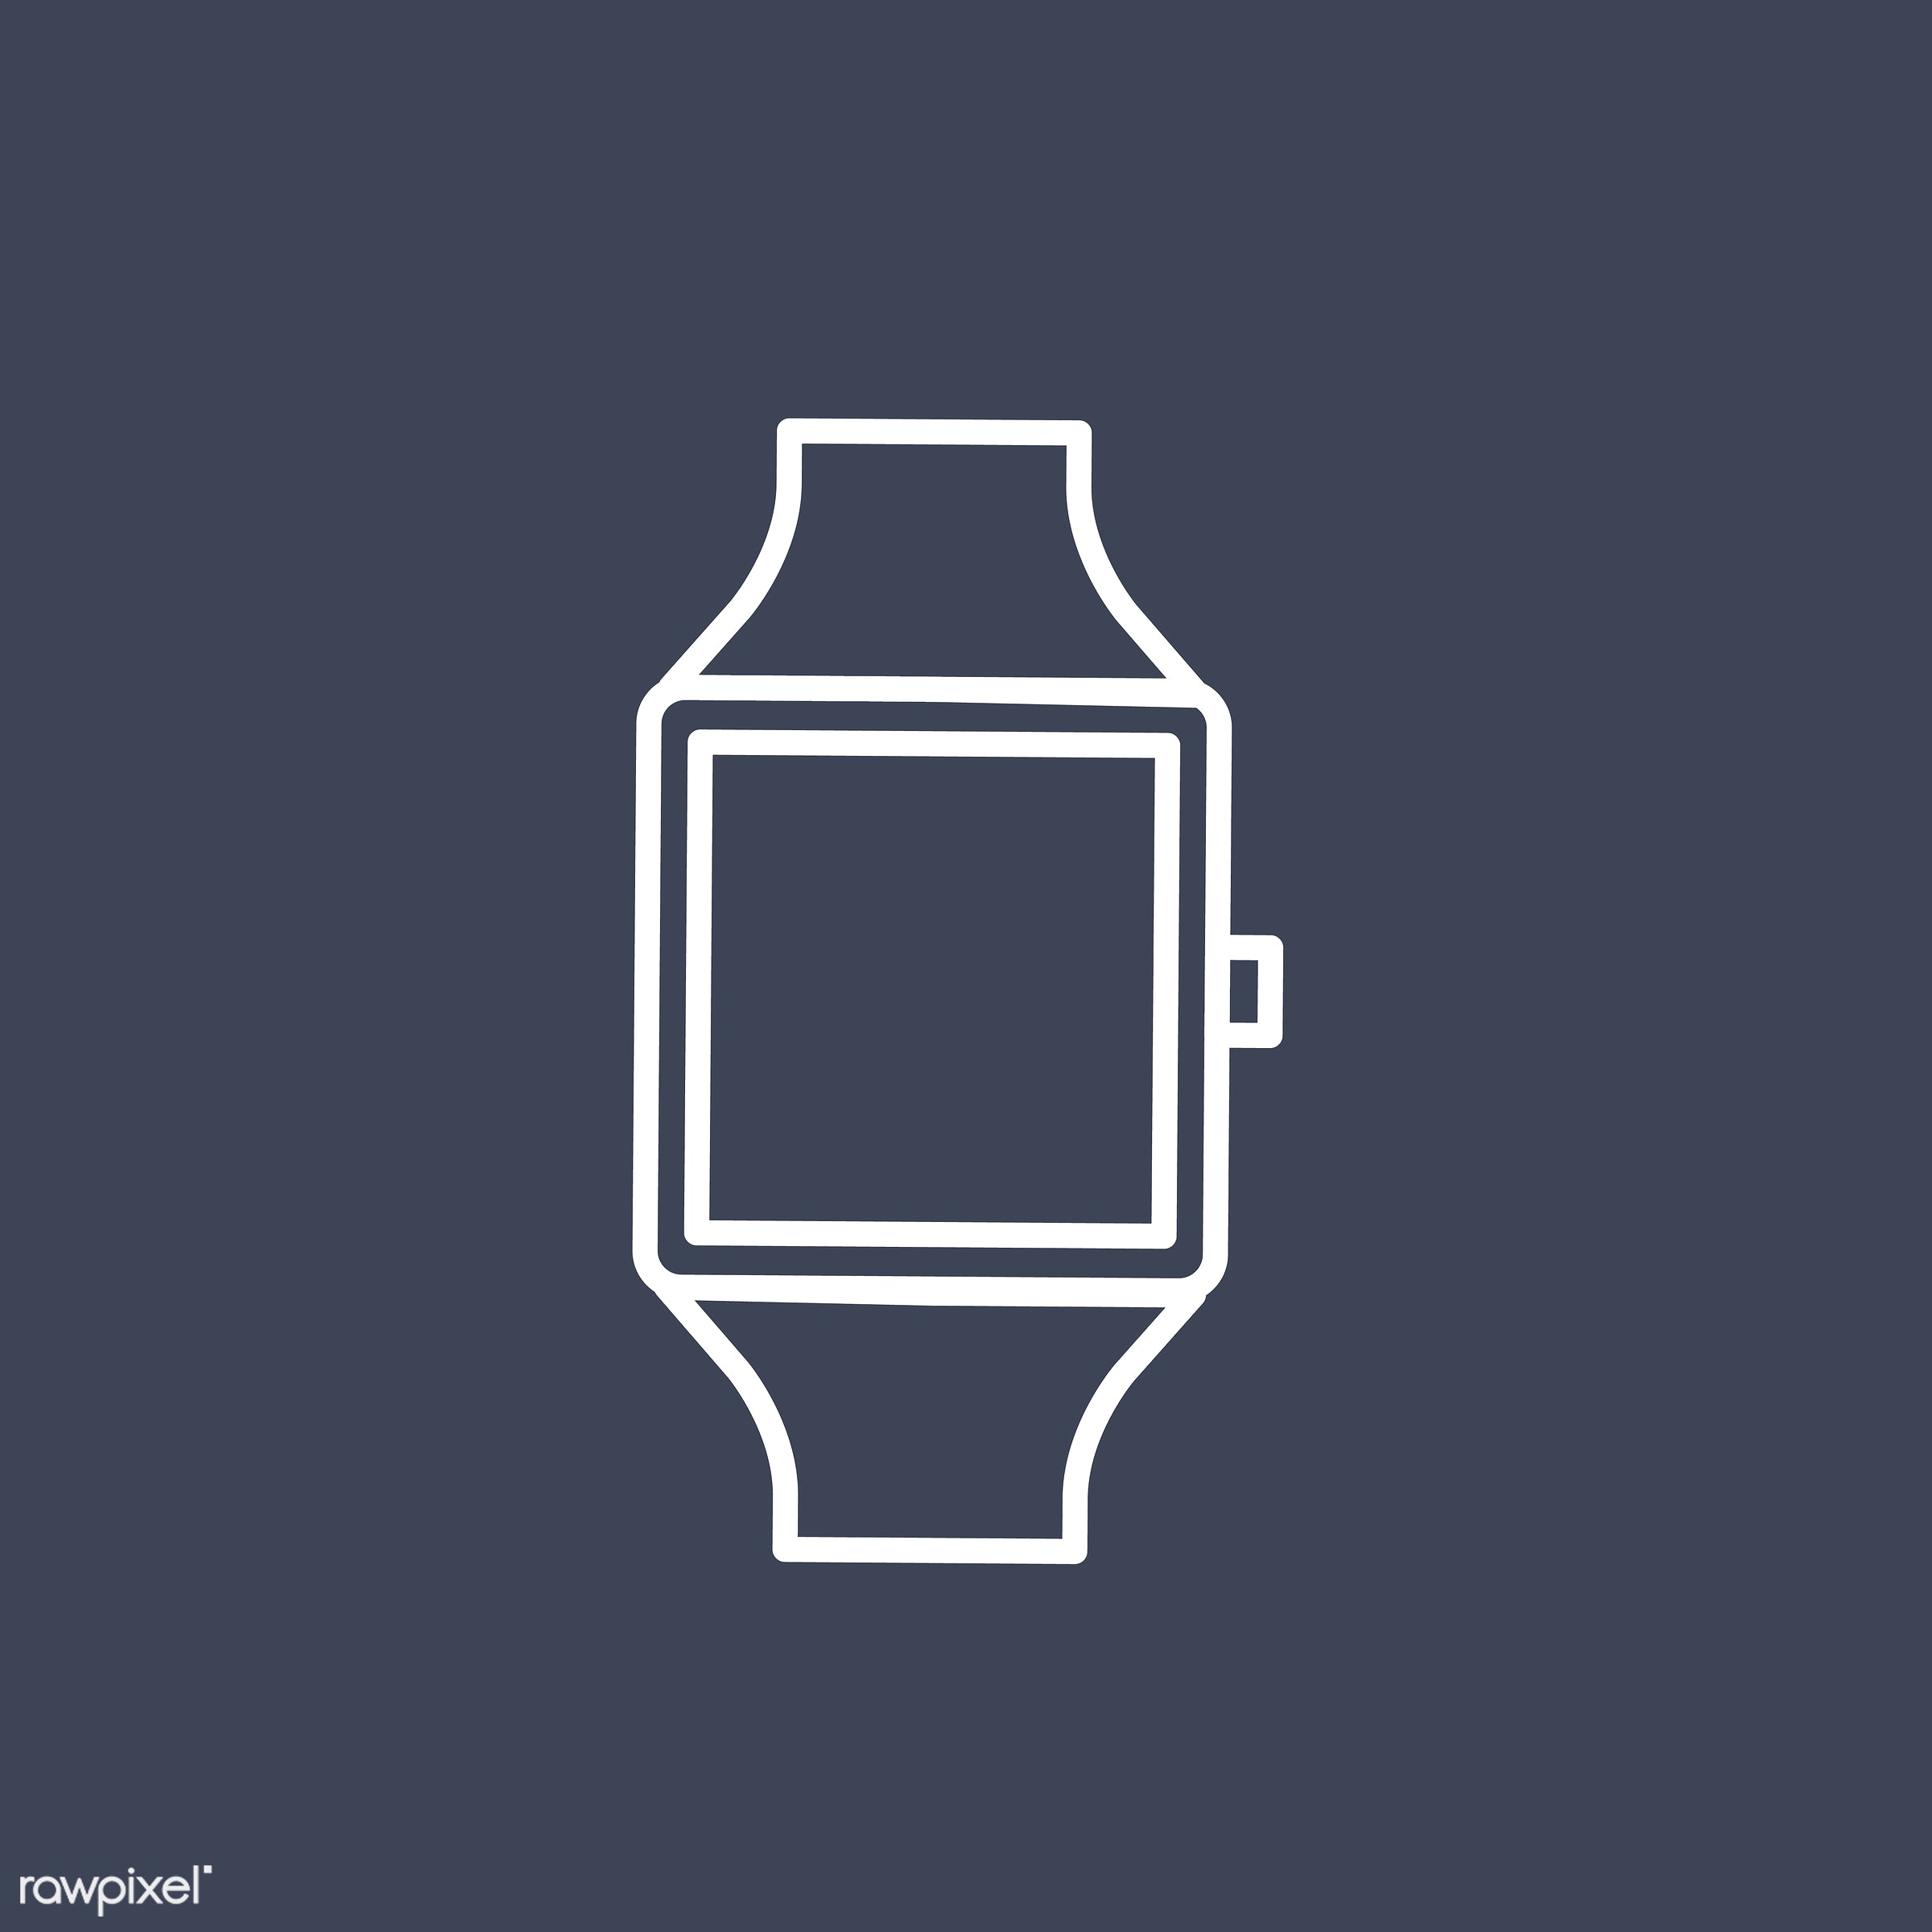 Vector of hand watch icon - modern, symbol, hand, watch, clock, illustration, vector, graphic, icon, mockup, copy space,...